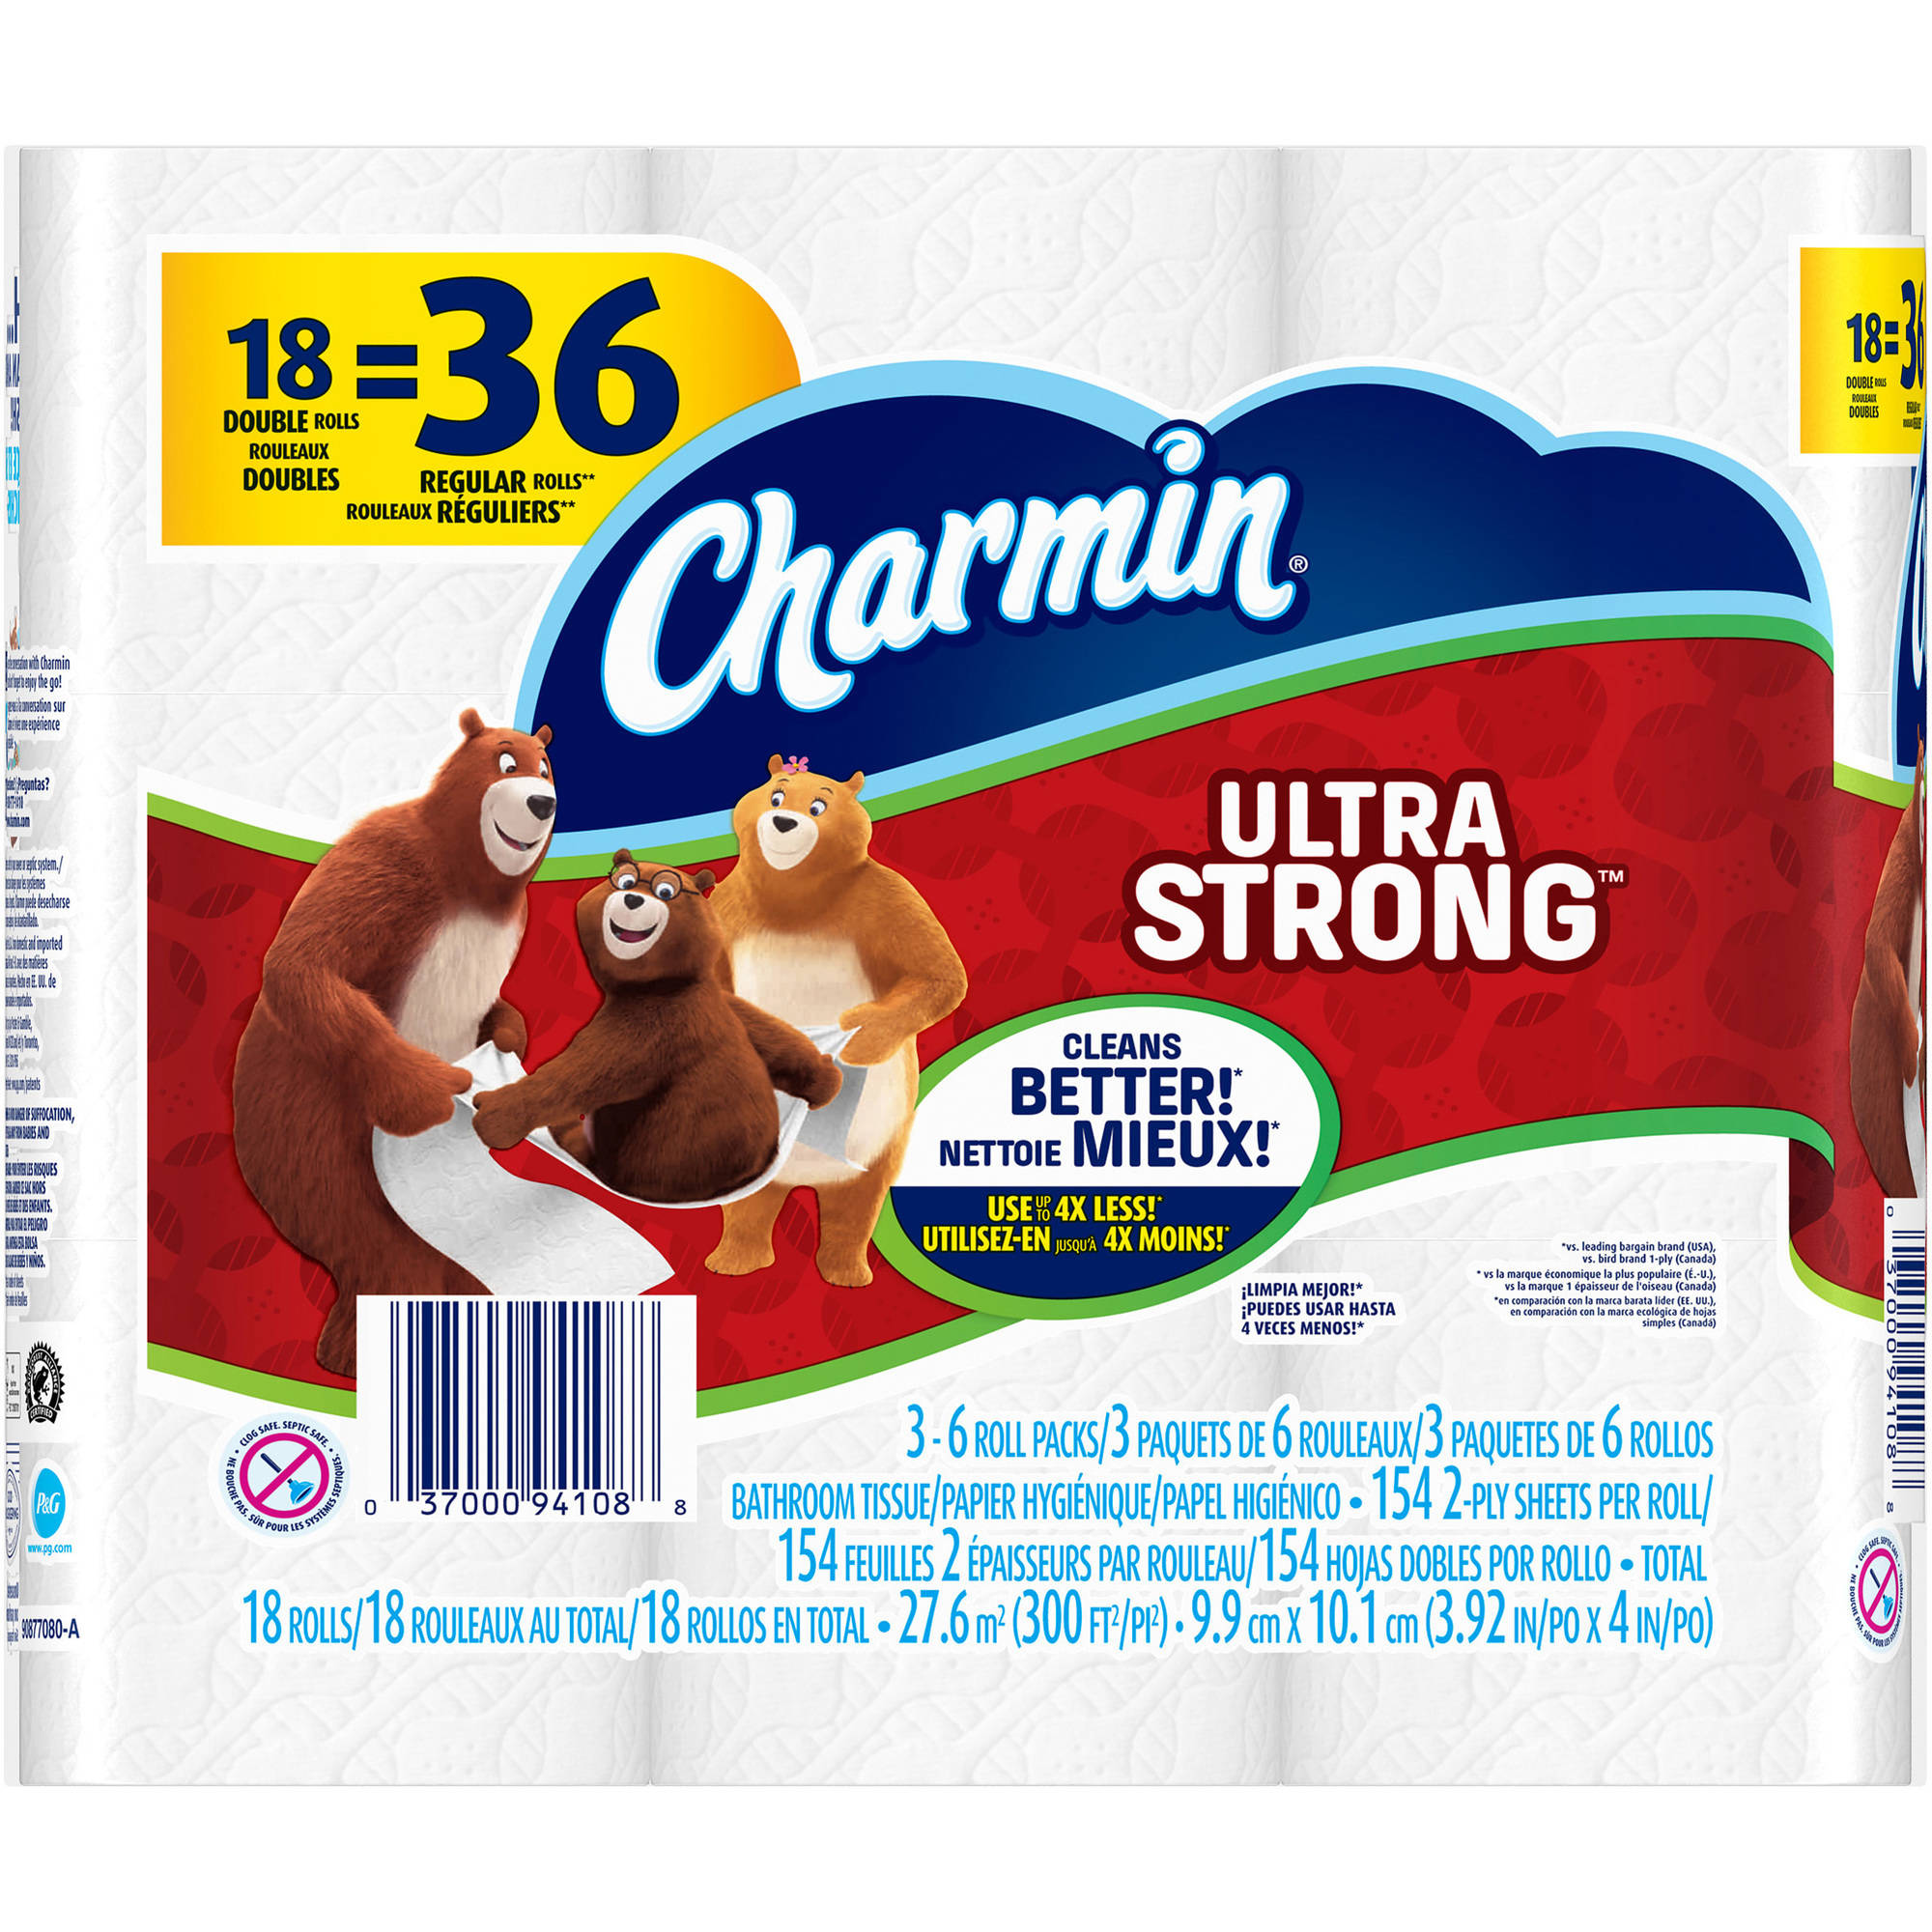 Charmin Ultra Strong Toilet Paper Double Rolls, 154 sheets, 18 rolls